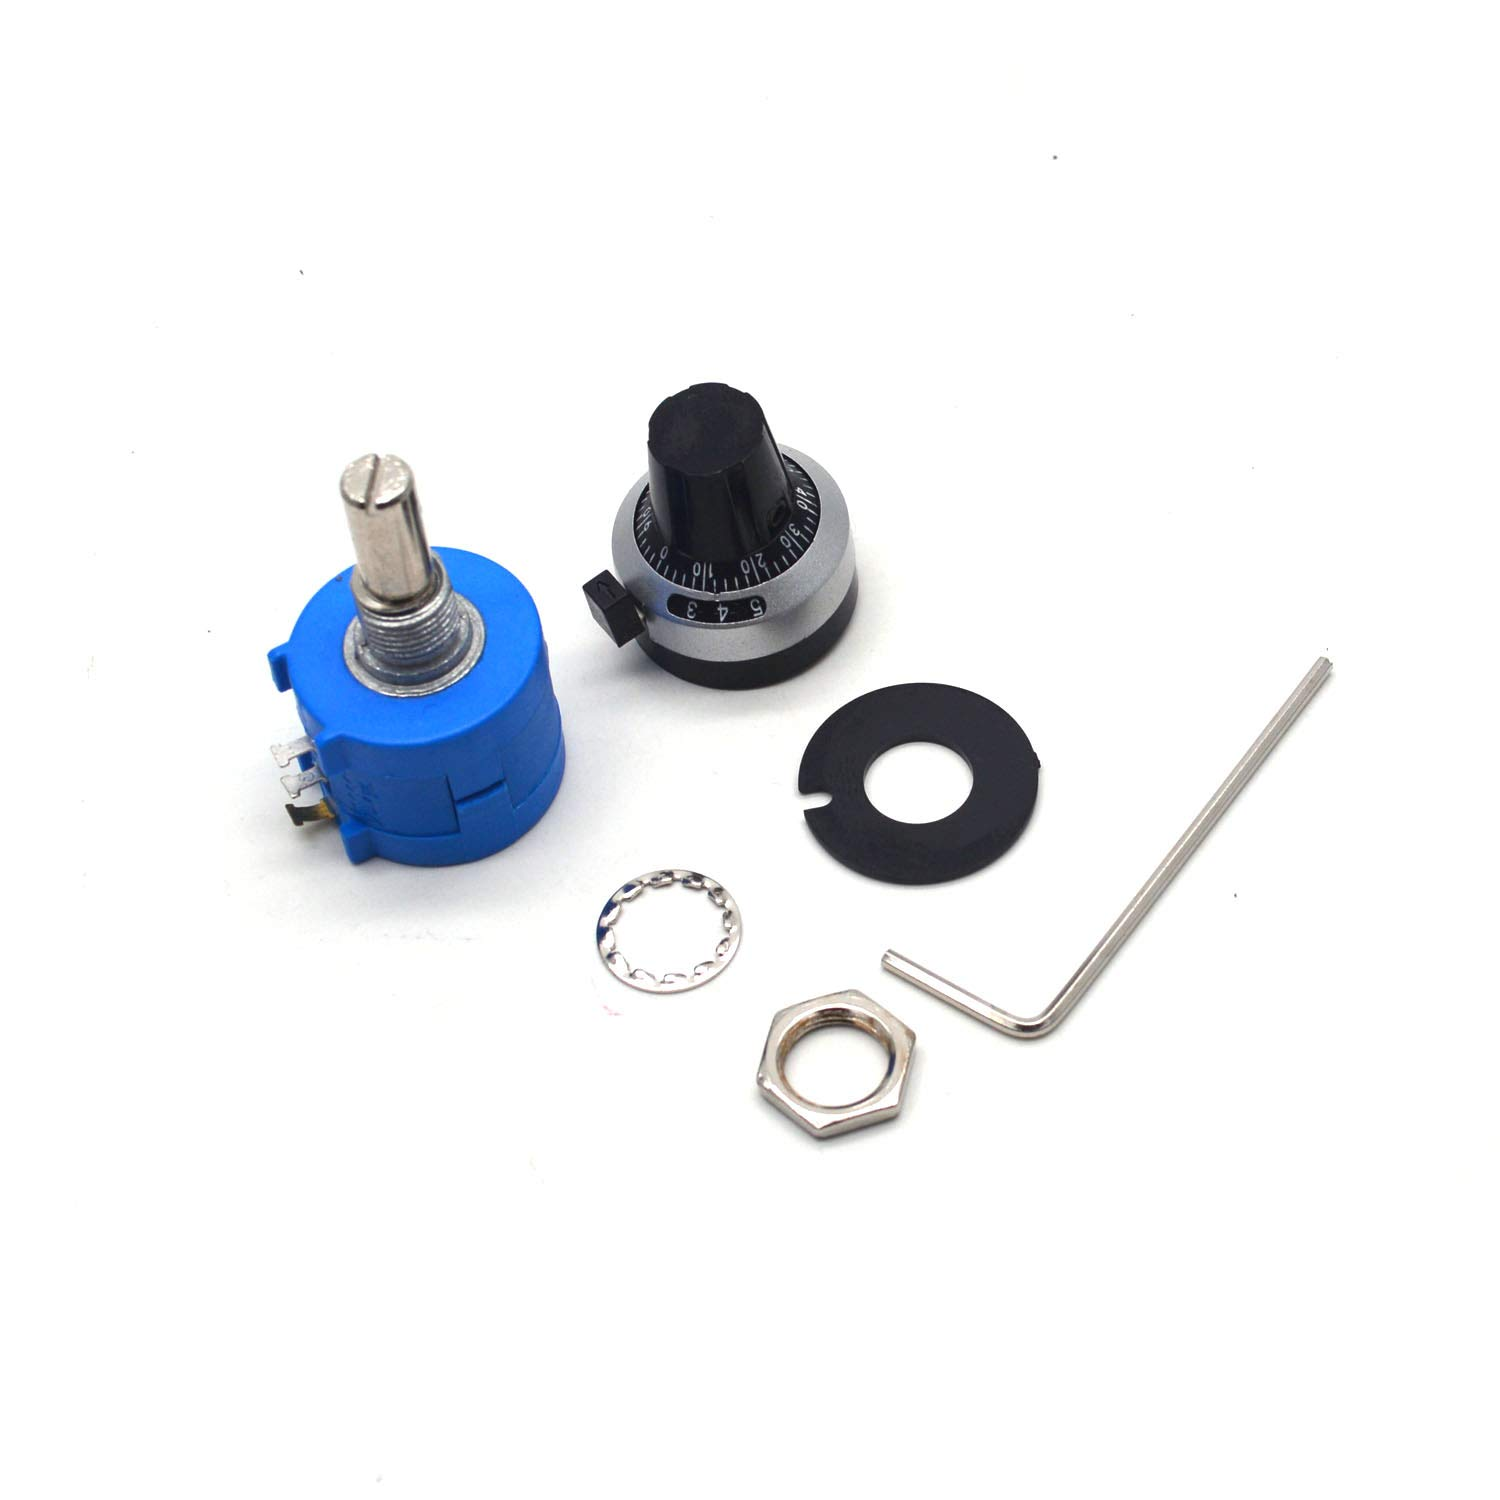 Antrader 1 Set 3590S-2-103L 10K Ohm 10-Turn Rotary Wire Wound Precision Potentiometer Kit